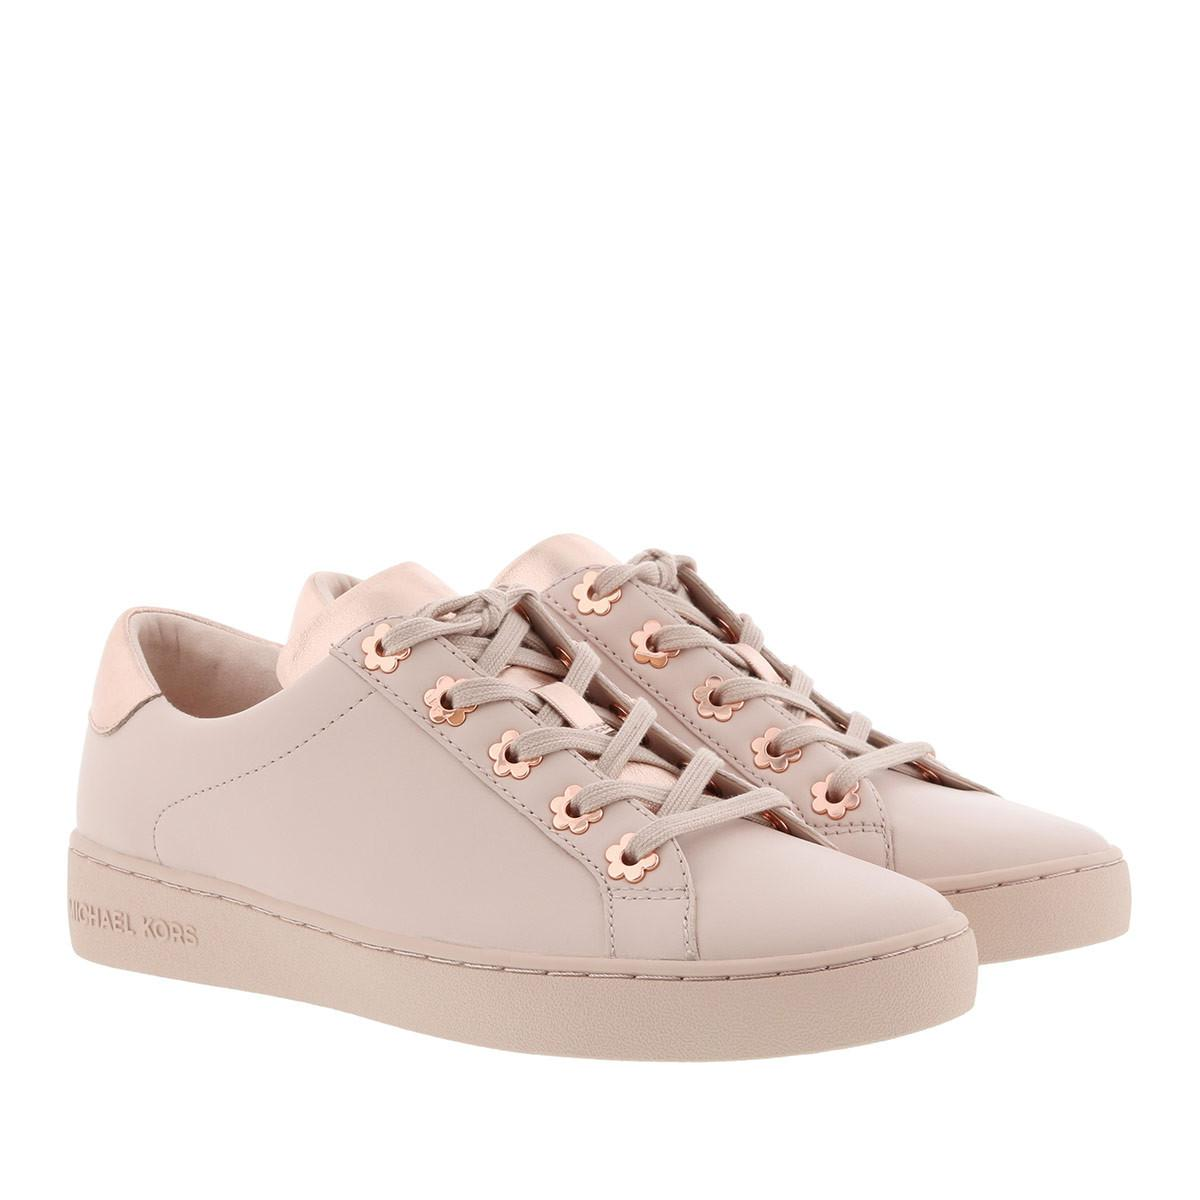 1bd14a6062b2 Michael Kors Irving Lace Up Sneaker Soft Pink in Pink - Lyst